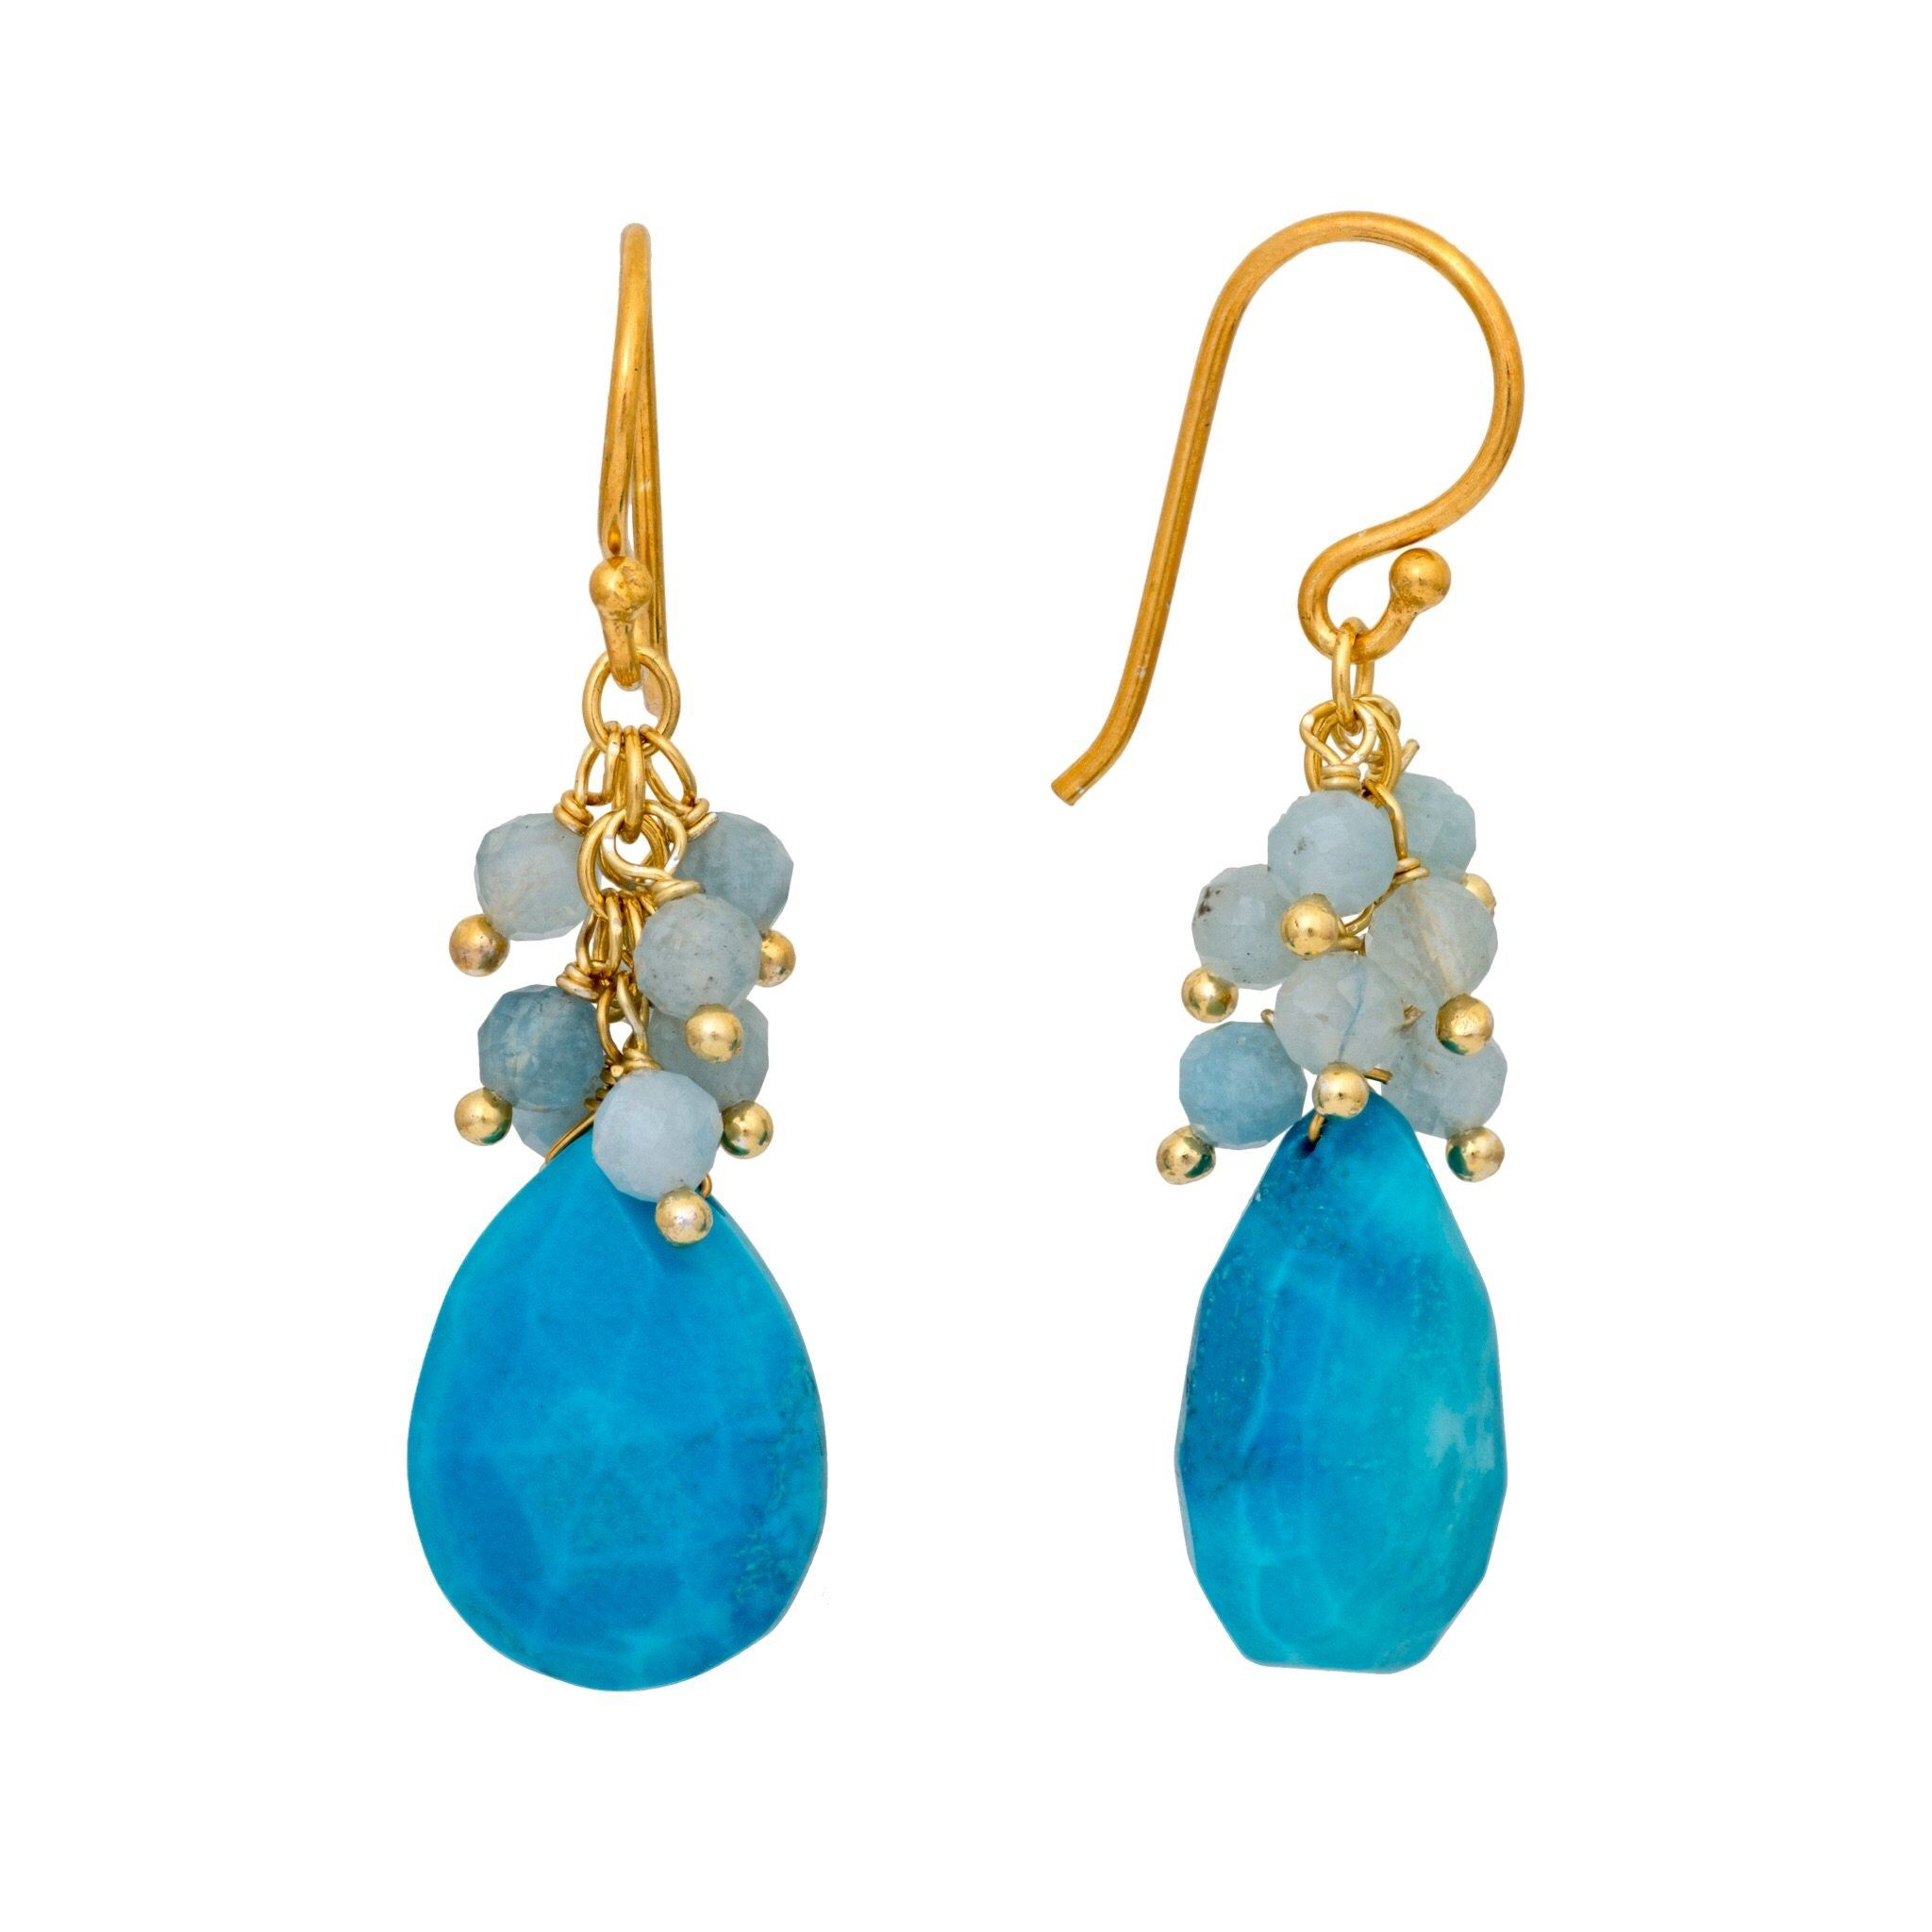 GRAPA turquoise earrings - MadamSiam